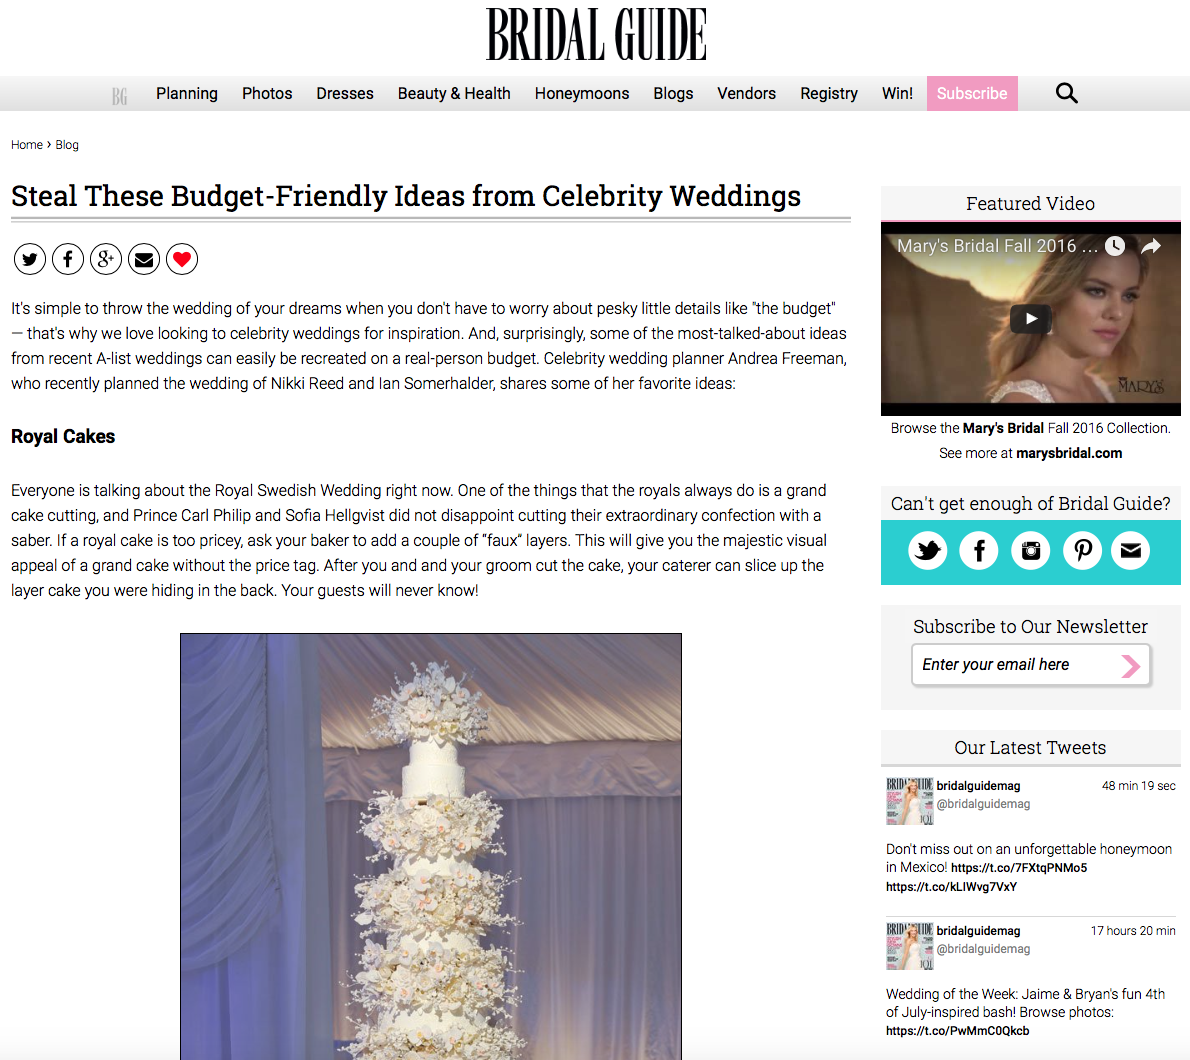 bridal-guide-01-andrea-freeman-events-nyc-wedding-planner.png